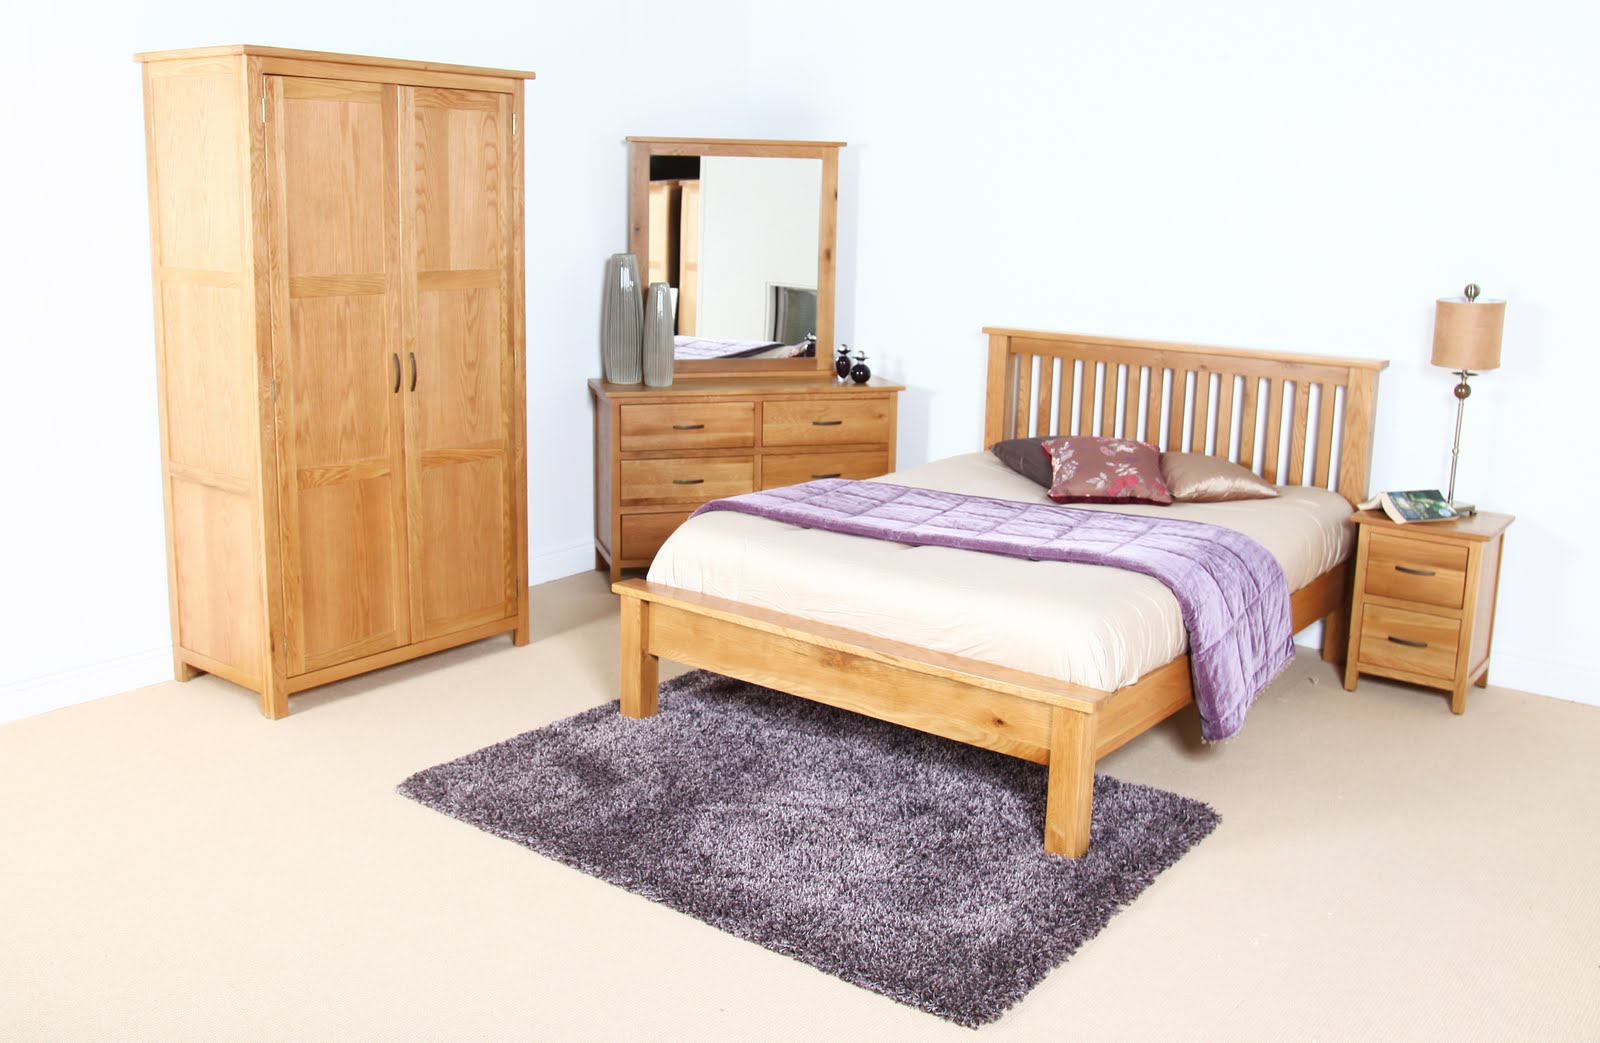 Urbane Furniture Shop Edinburgh Edinburgh Furniture Deliveries